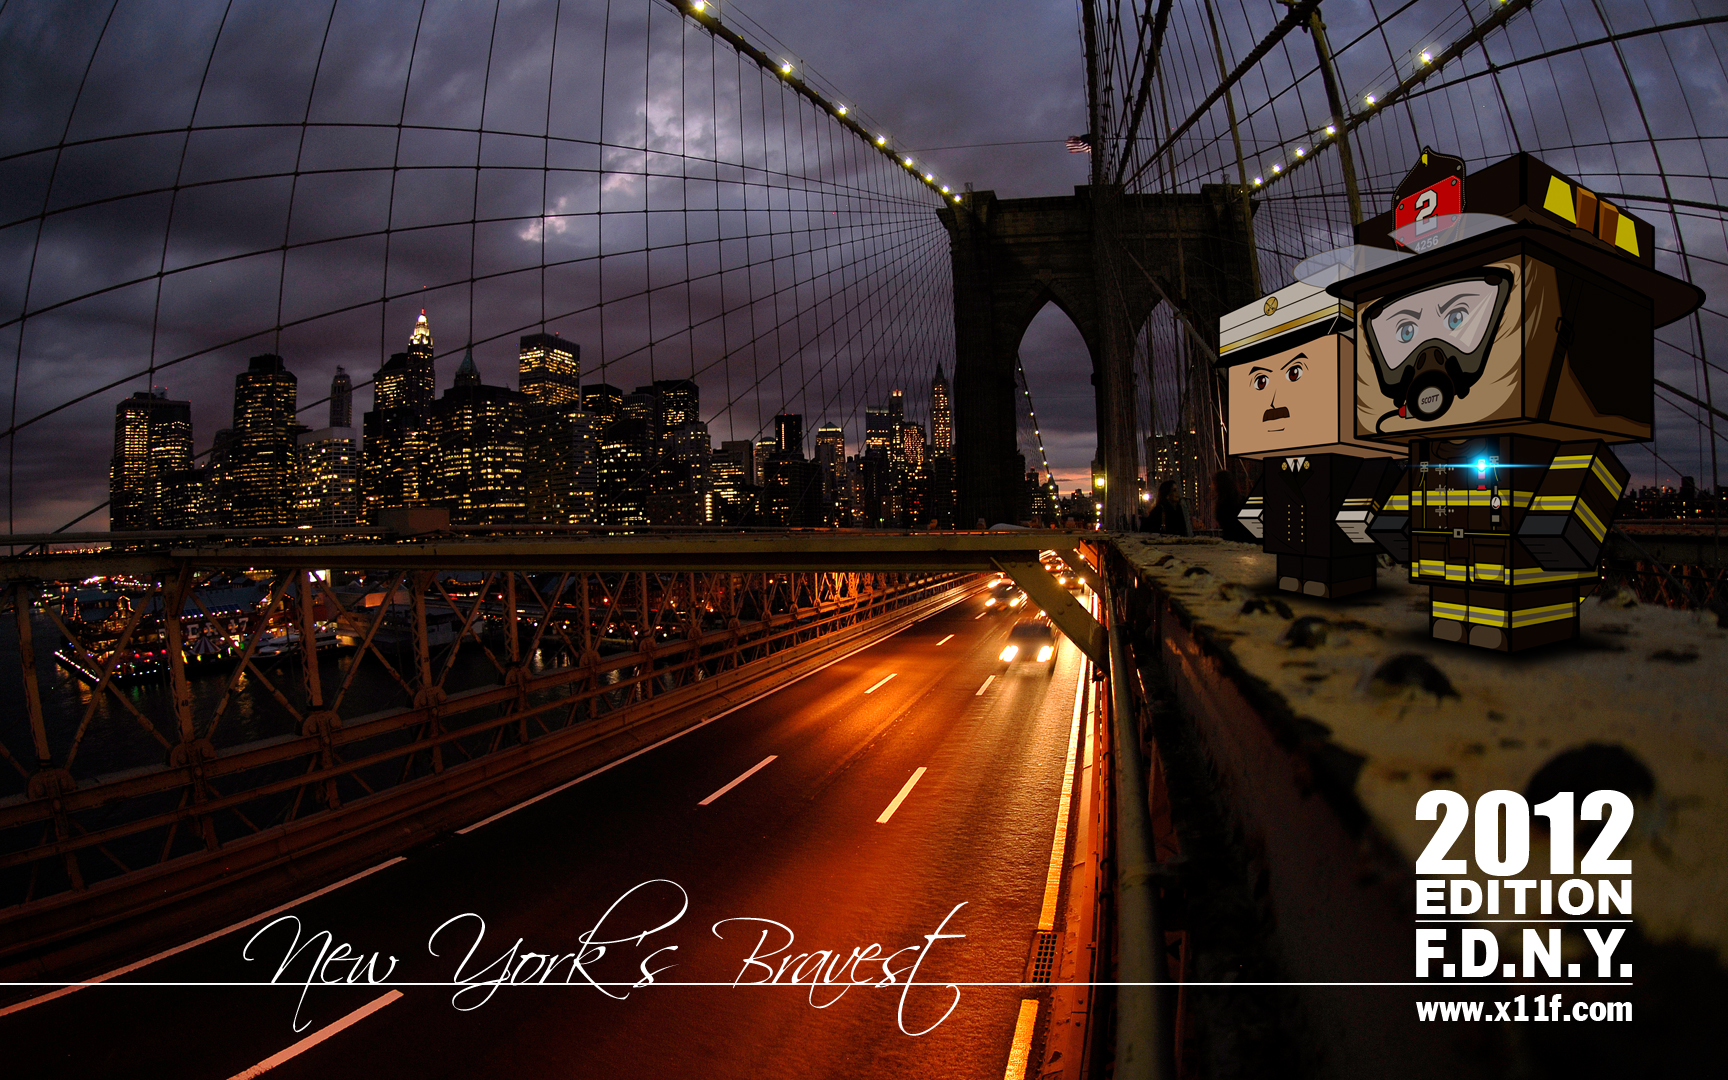 Fdny Wallpaper Fdny firefighters by ricardo 1728x1080